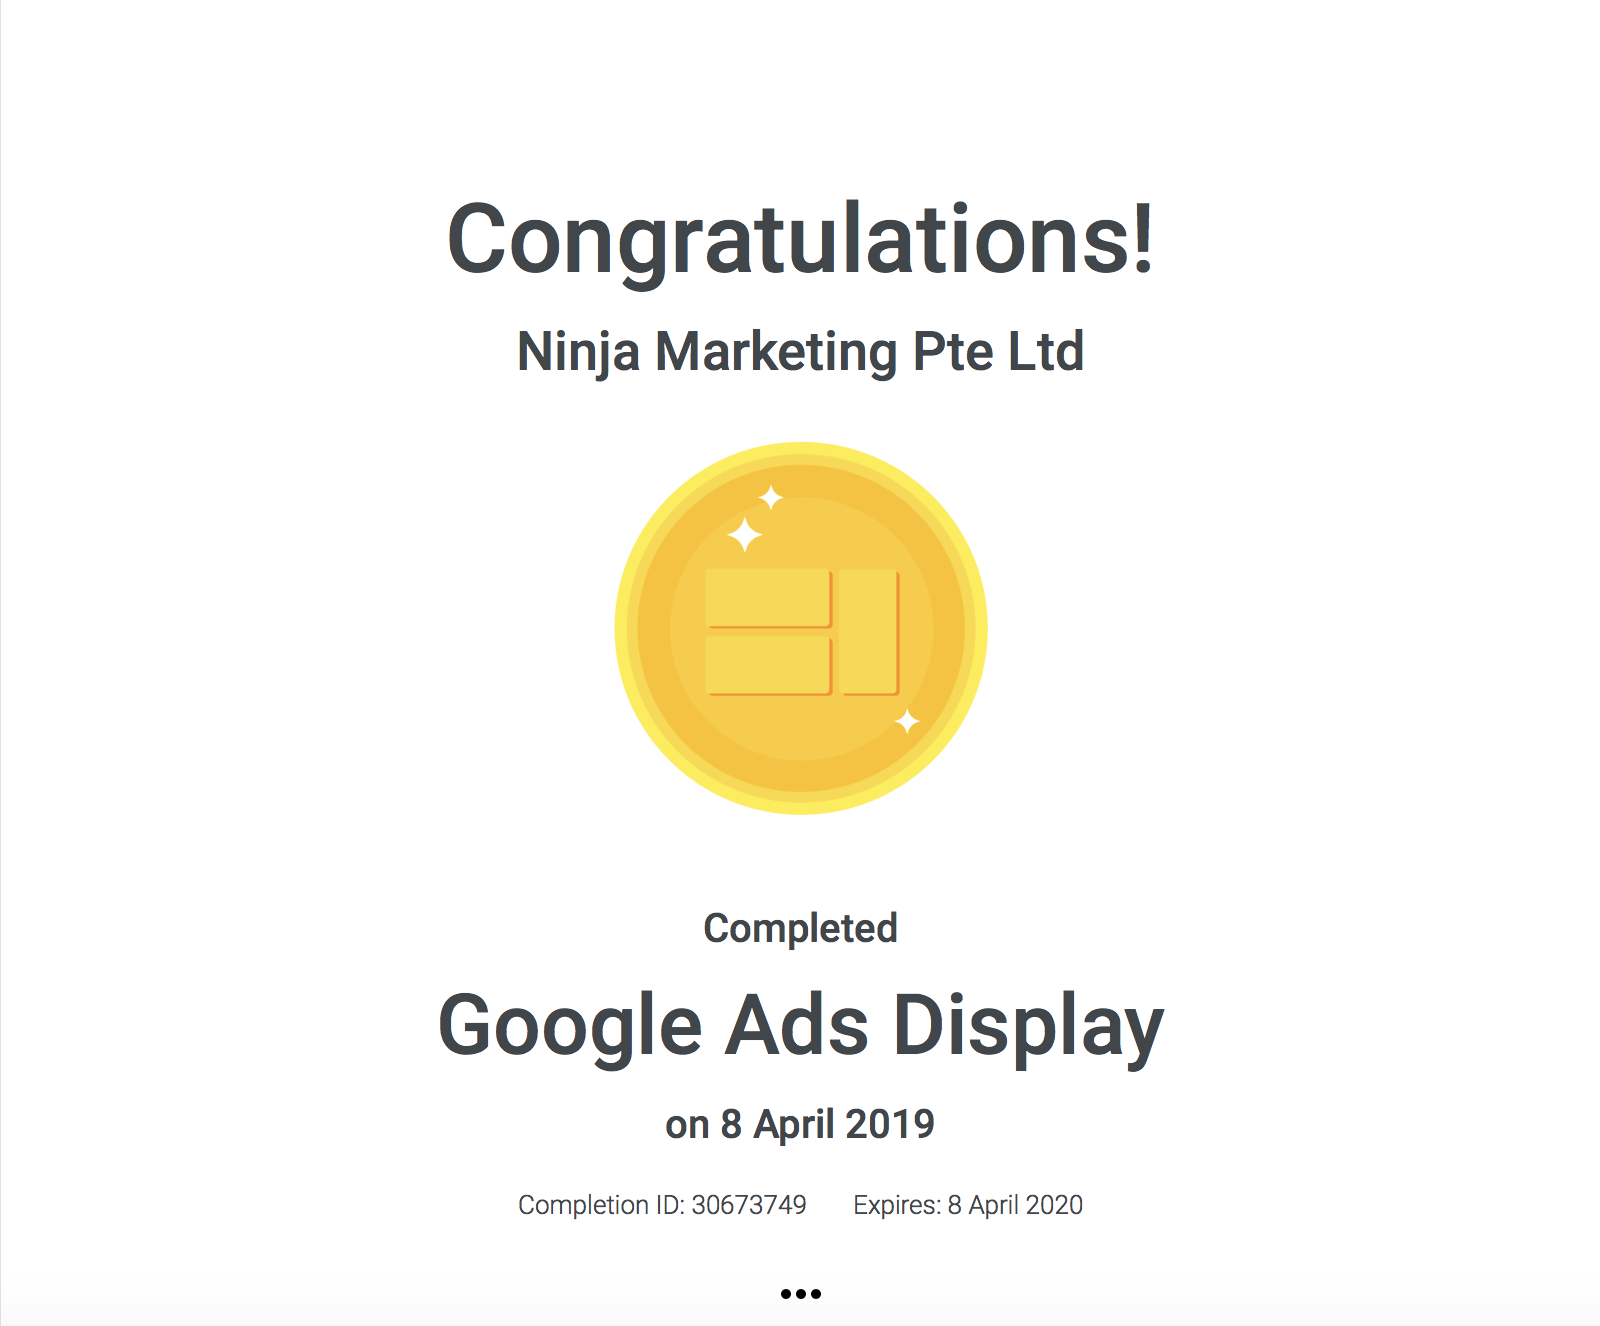 Ninja Marketing - Google Ads Display Achievement Award